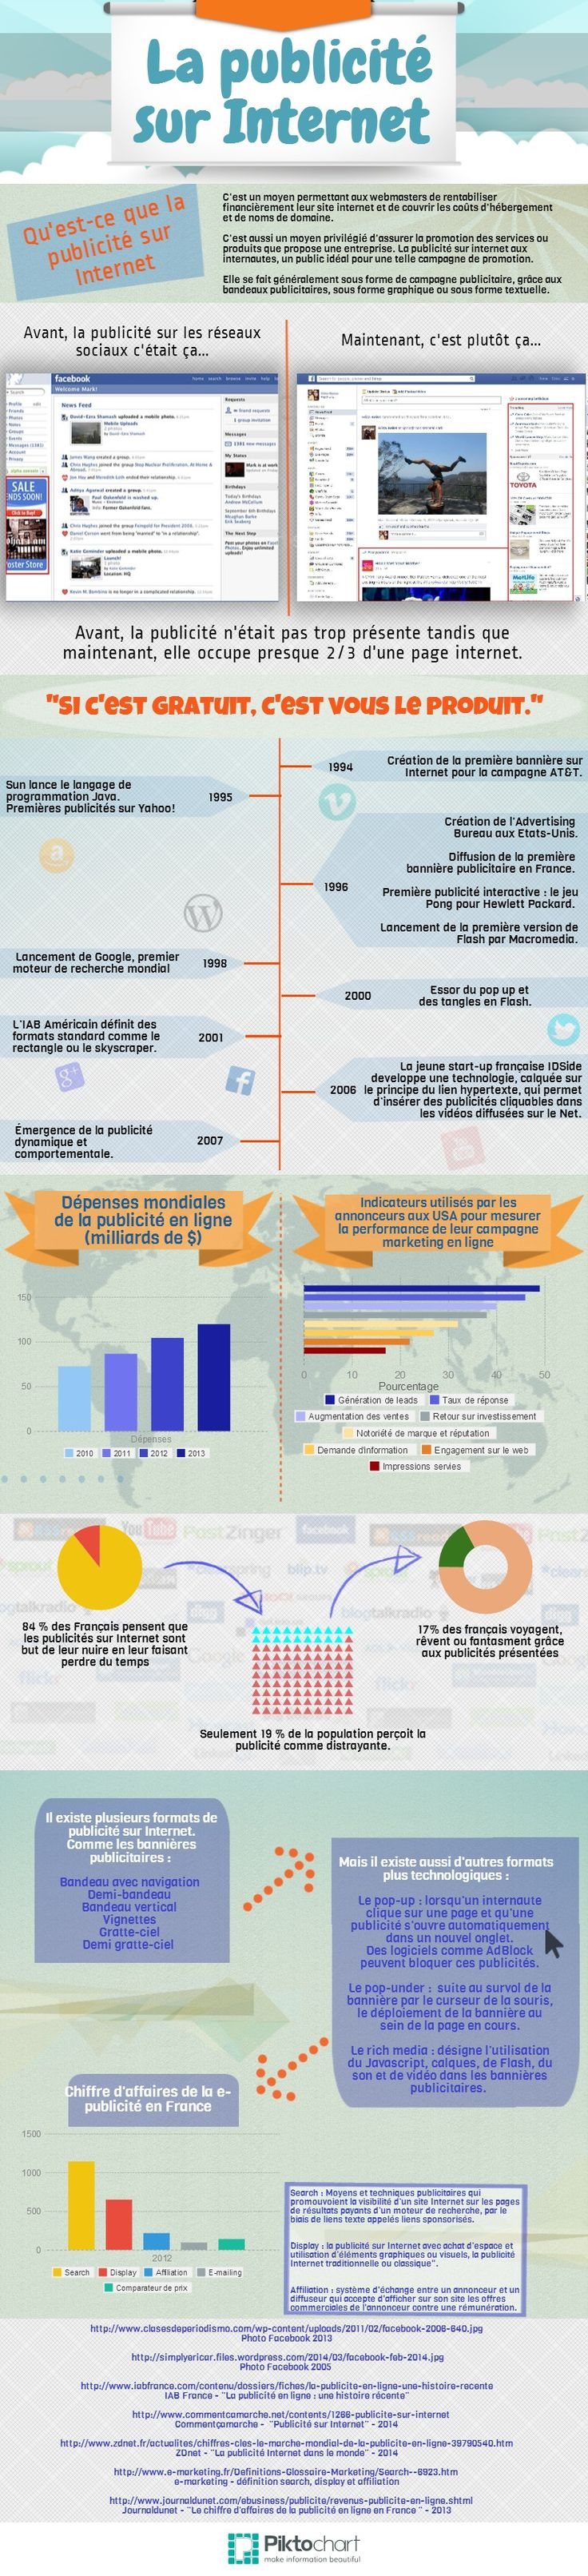 La publicité sur Internet #Infographie - NOVALES Ophelia | via #BornToBeSocial - Pinterest Marketing